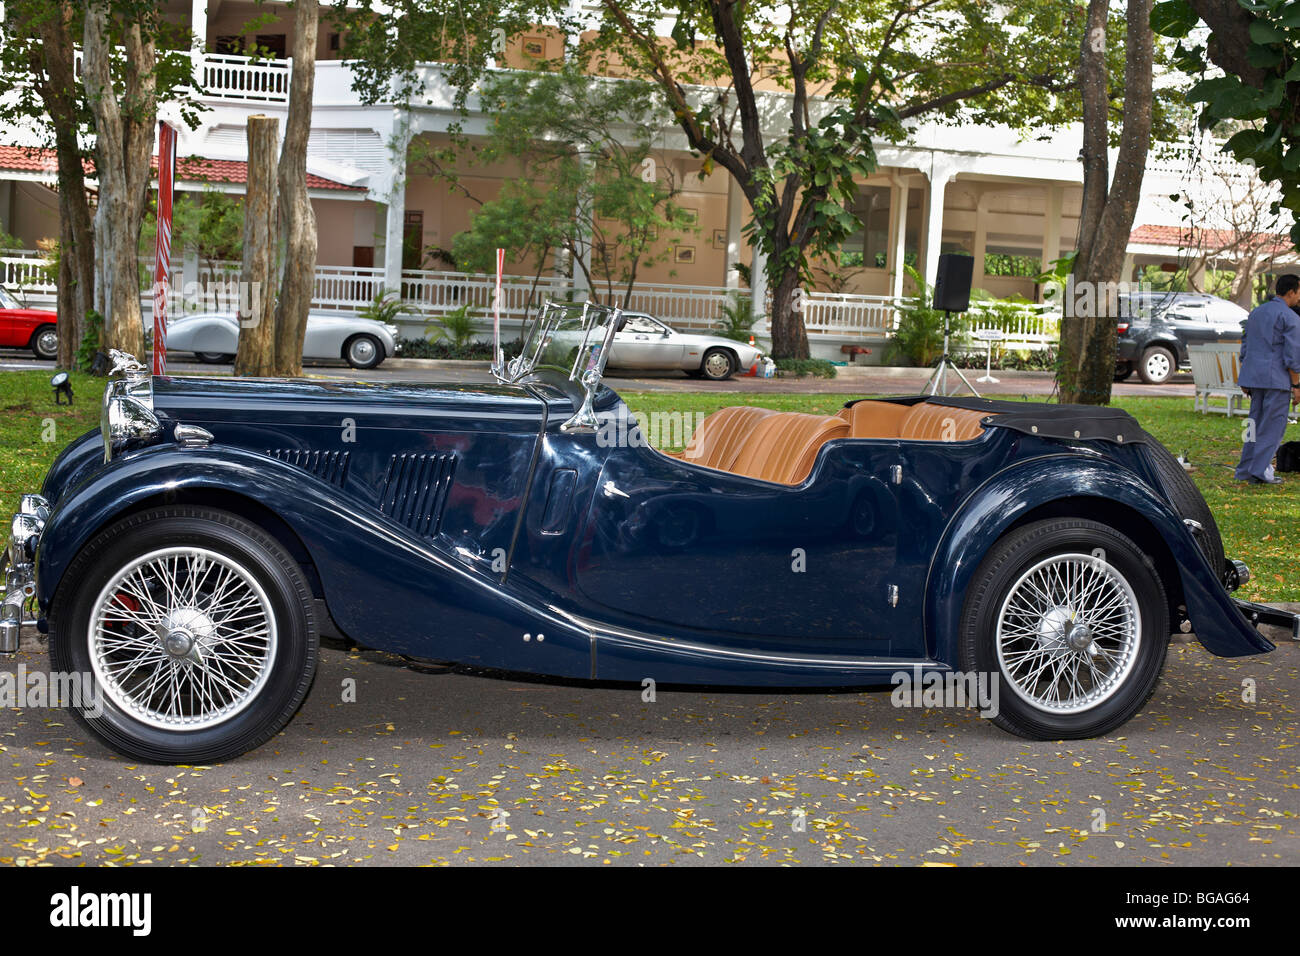 Mg tf stock photos mg tf stock images alamy classic british 1954 mg tf sports car in blue stock image vanachro Gallery